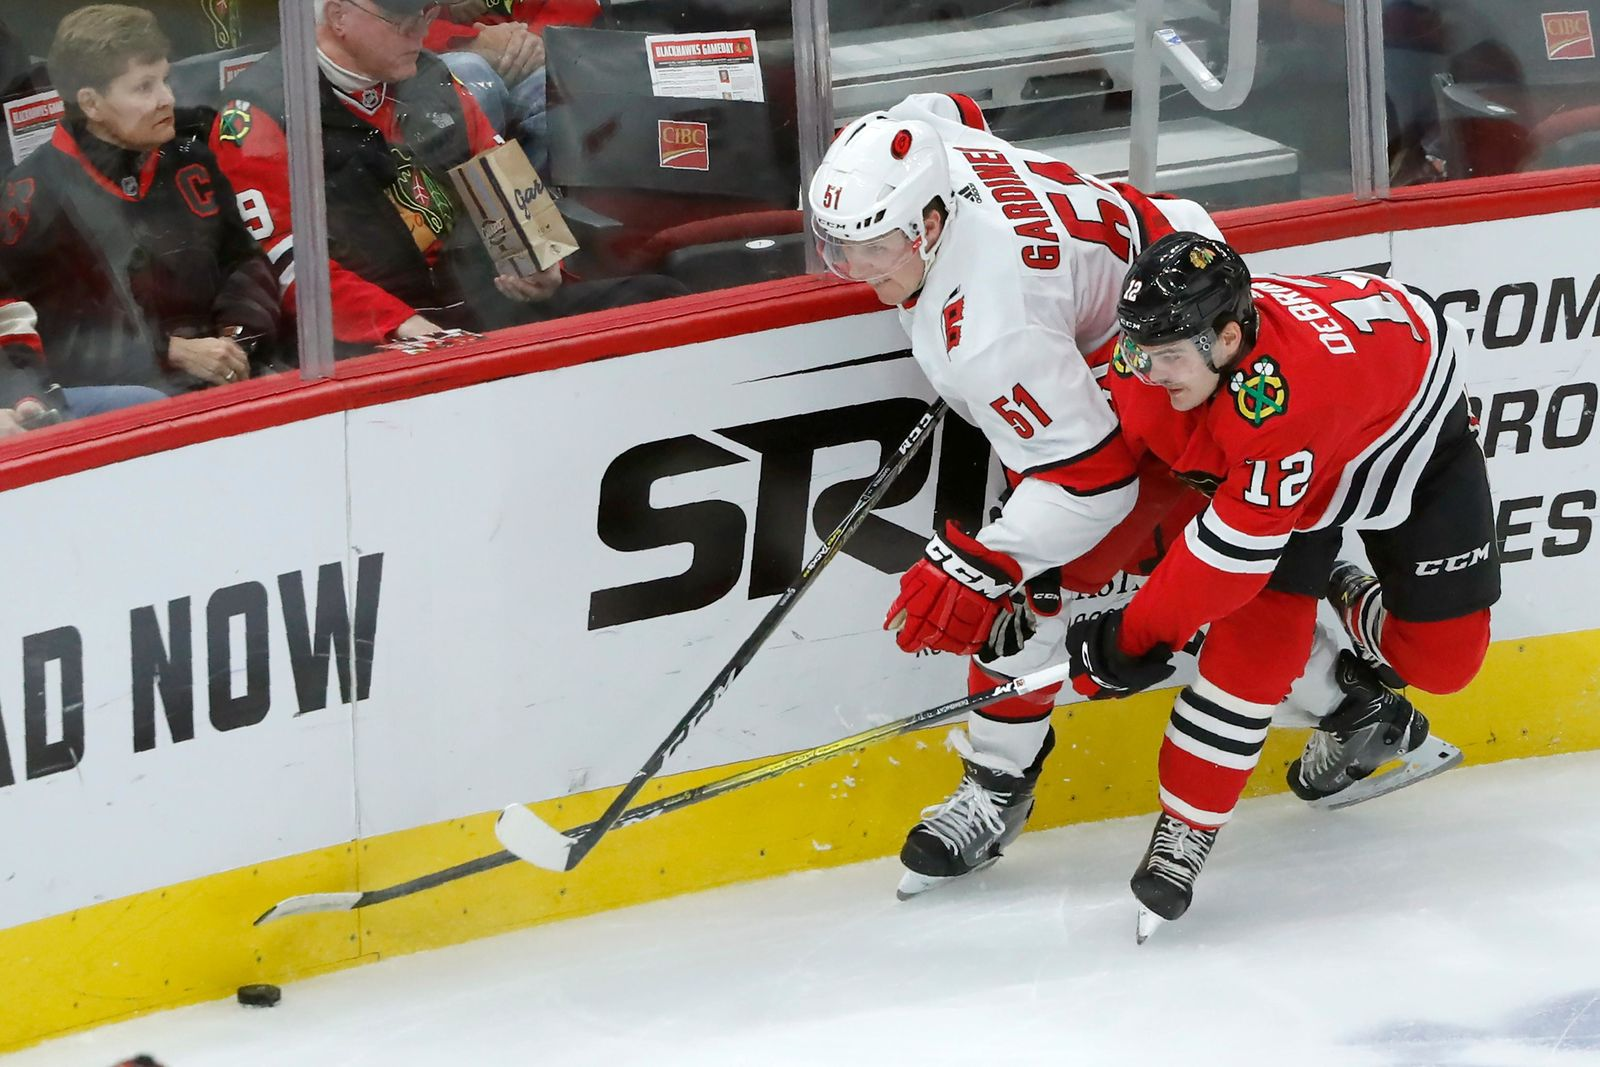 Carolina Hurricanes' Jake Gardiner (51) and Chicago Blackhawks' Alex DeBrincat vie for the puck during the first period of an NHL hockey game Tuesday, Nov. 19, 2019, in Chicago. (AP Photo/Charles Rex Arbogast)